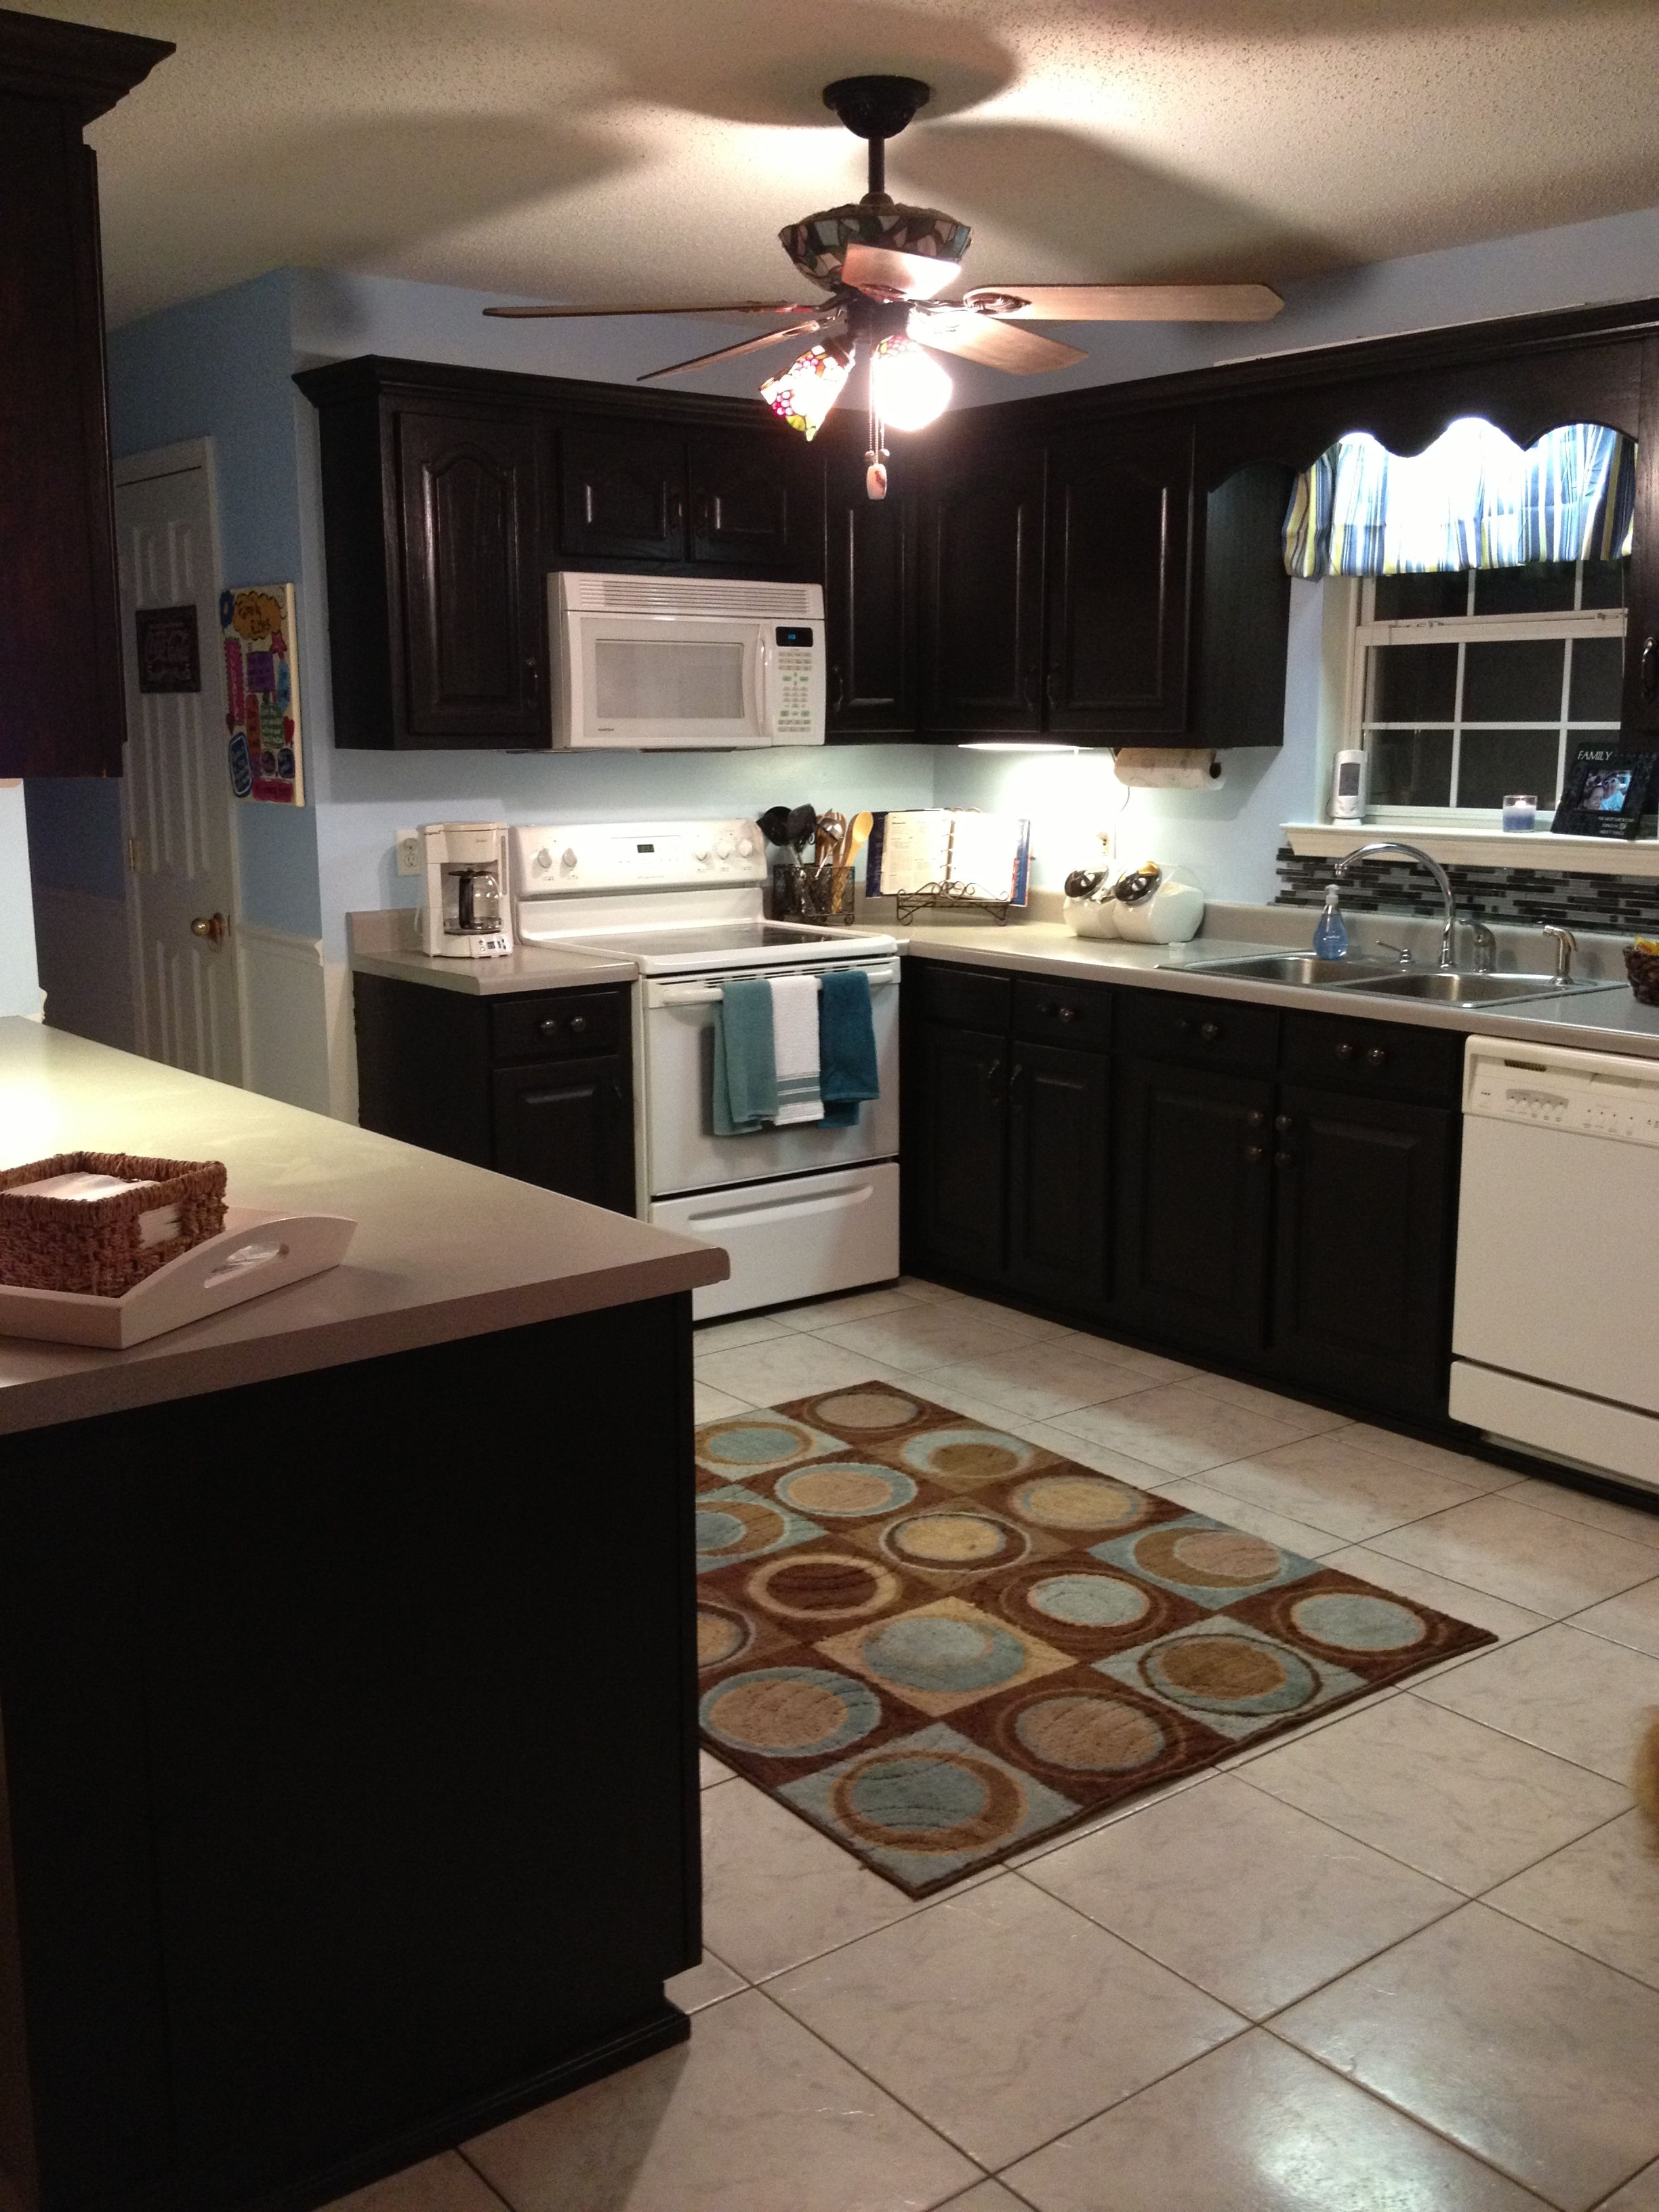 Kitchen renovation from builder grade oak cabinets to ...